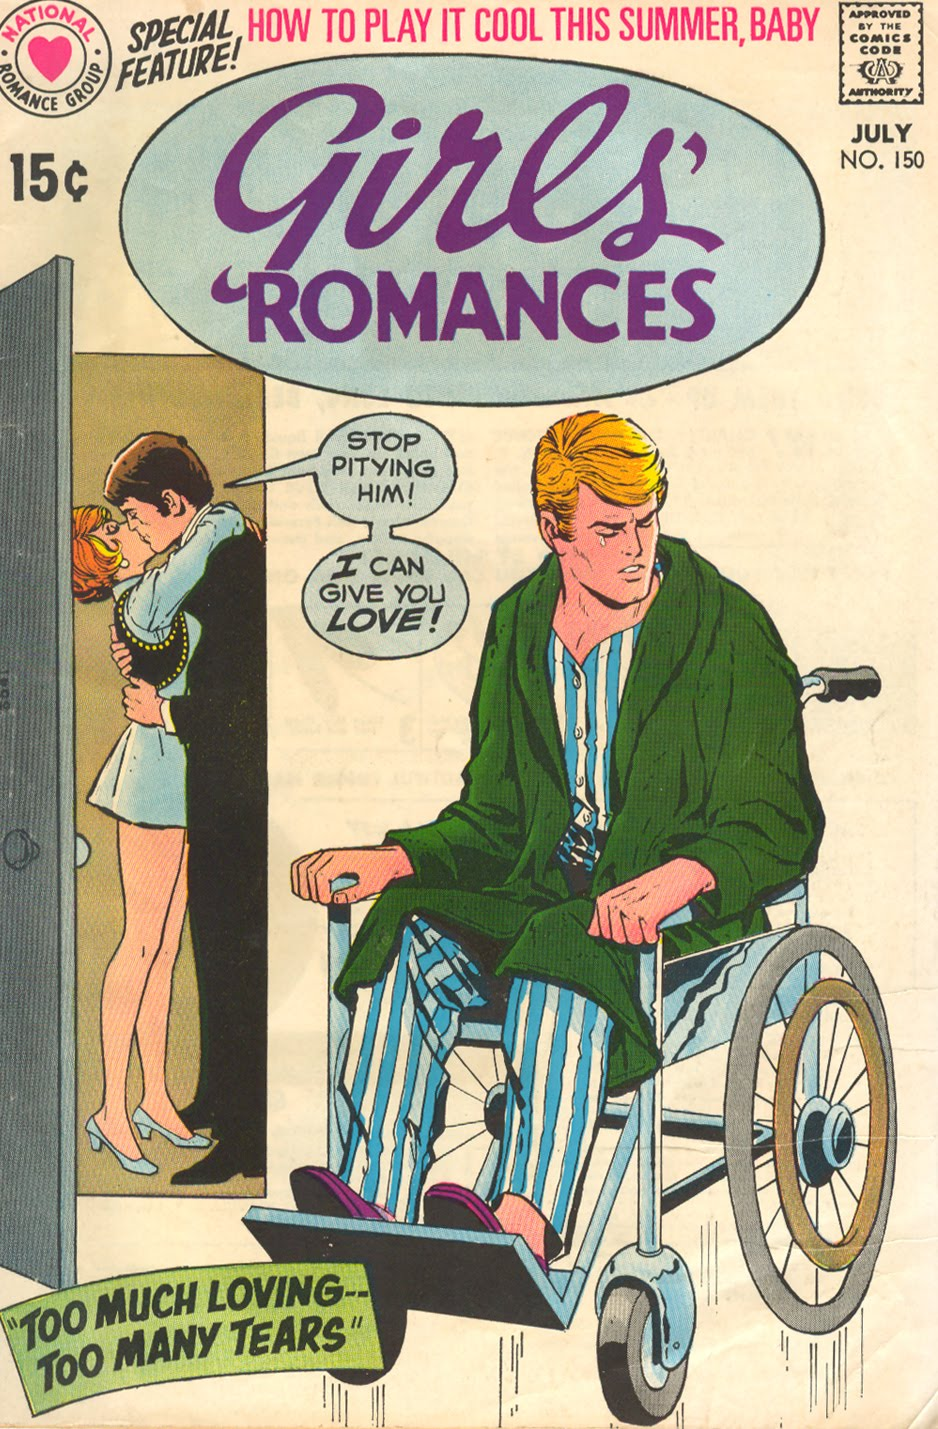 "DIAGNOSIS: Knee injury as a result of a football accident (yes, even guys can be pitied) ""Too Much Loving... Too Many Tears!""  Girls' Romances  #150 (July 1970) Cover pencils by Nick Cardy, inks by Vince Colletta"